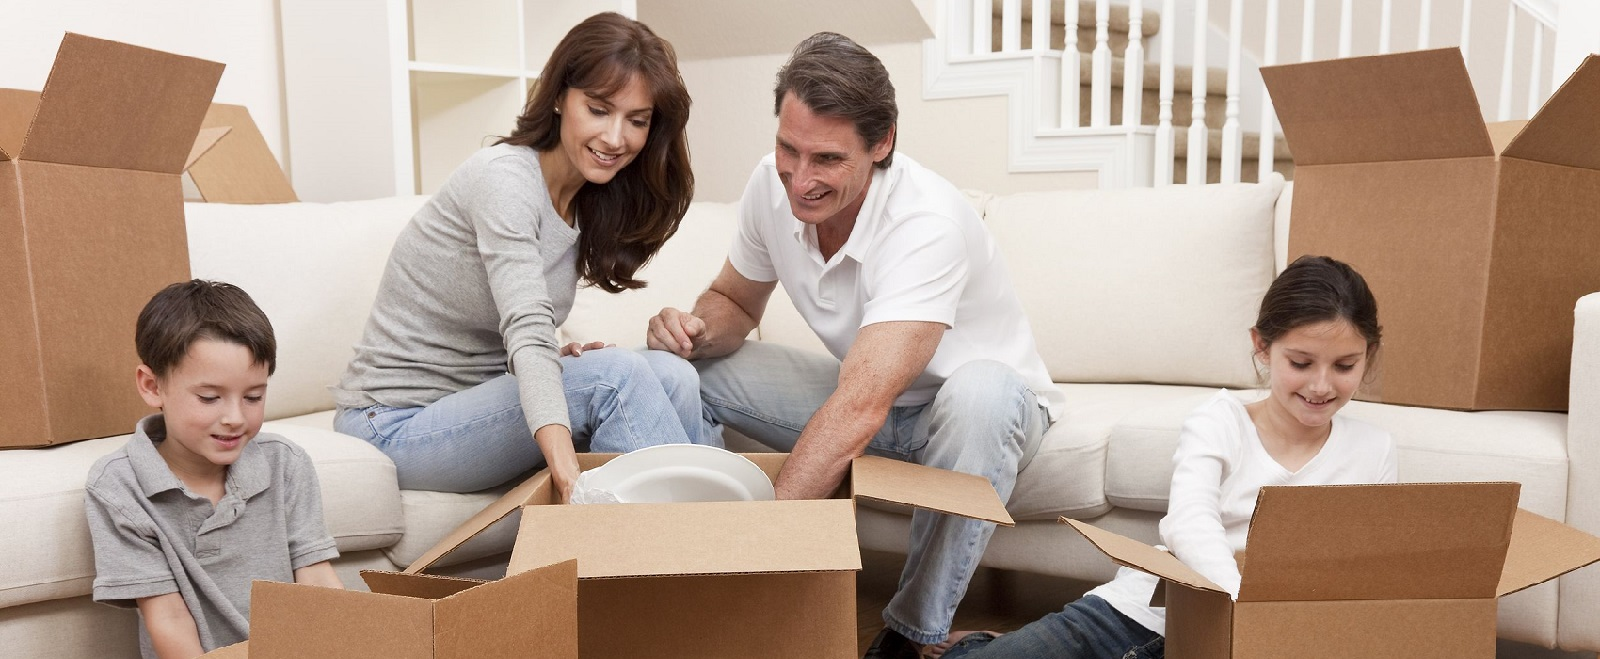 Packers-and-Movers-in-bangalore